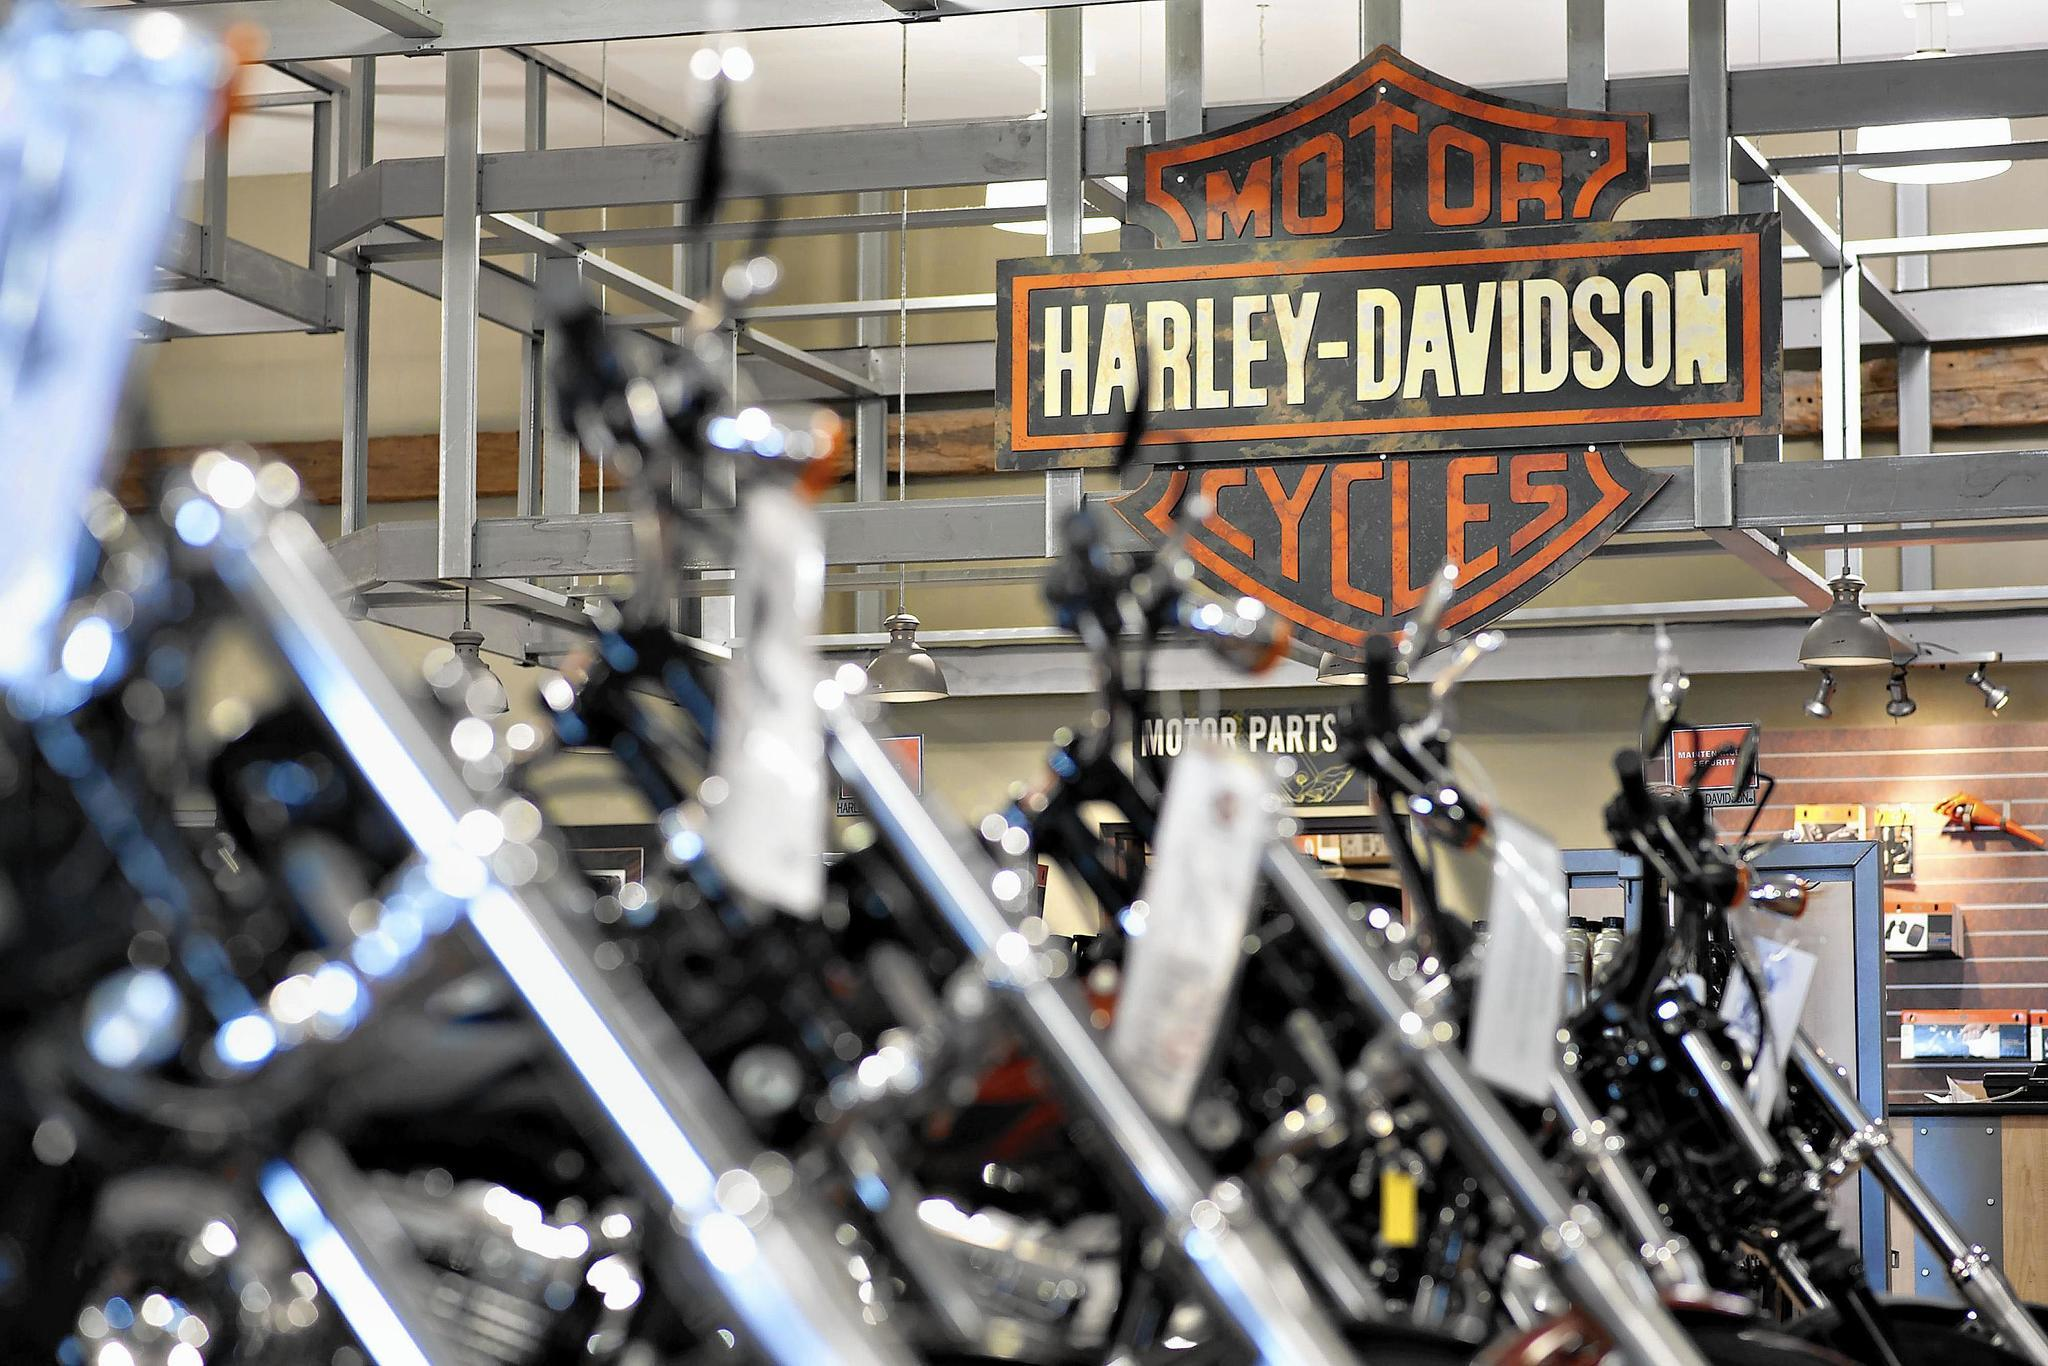 Car Dealerships In Ct >> Harley-Davidson on a bumpy ride with motorcycle-averse millennials - Chicago Tribune